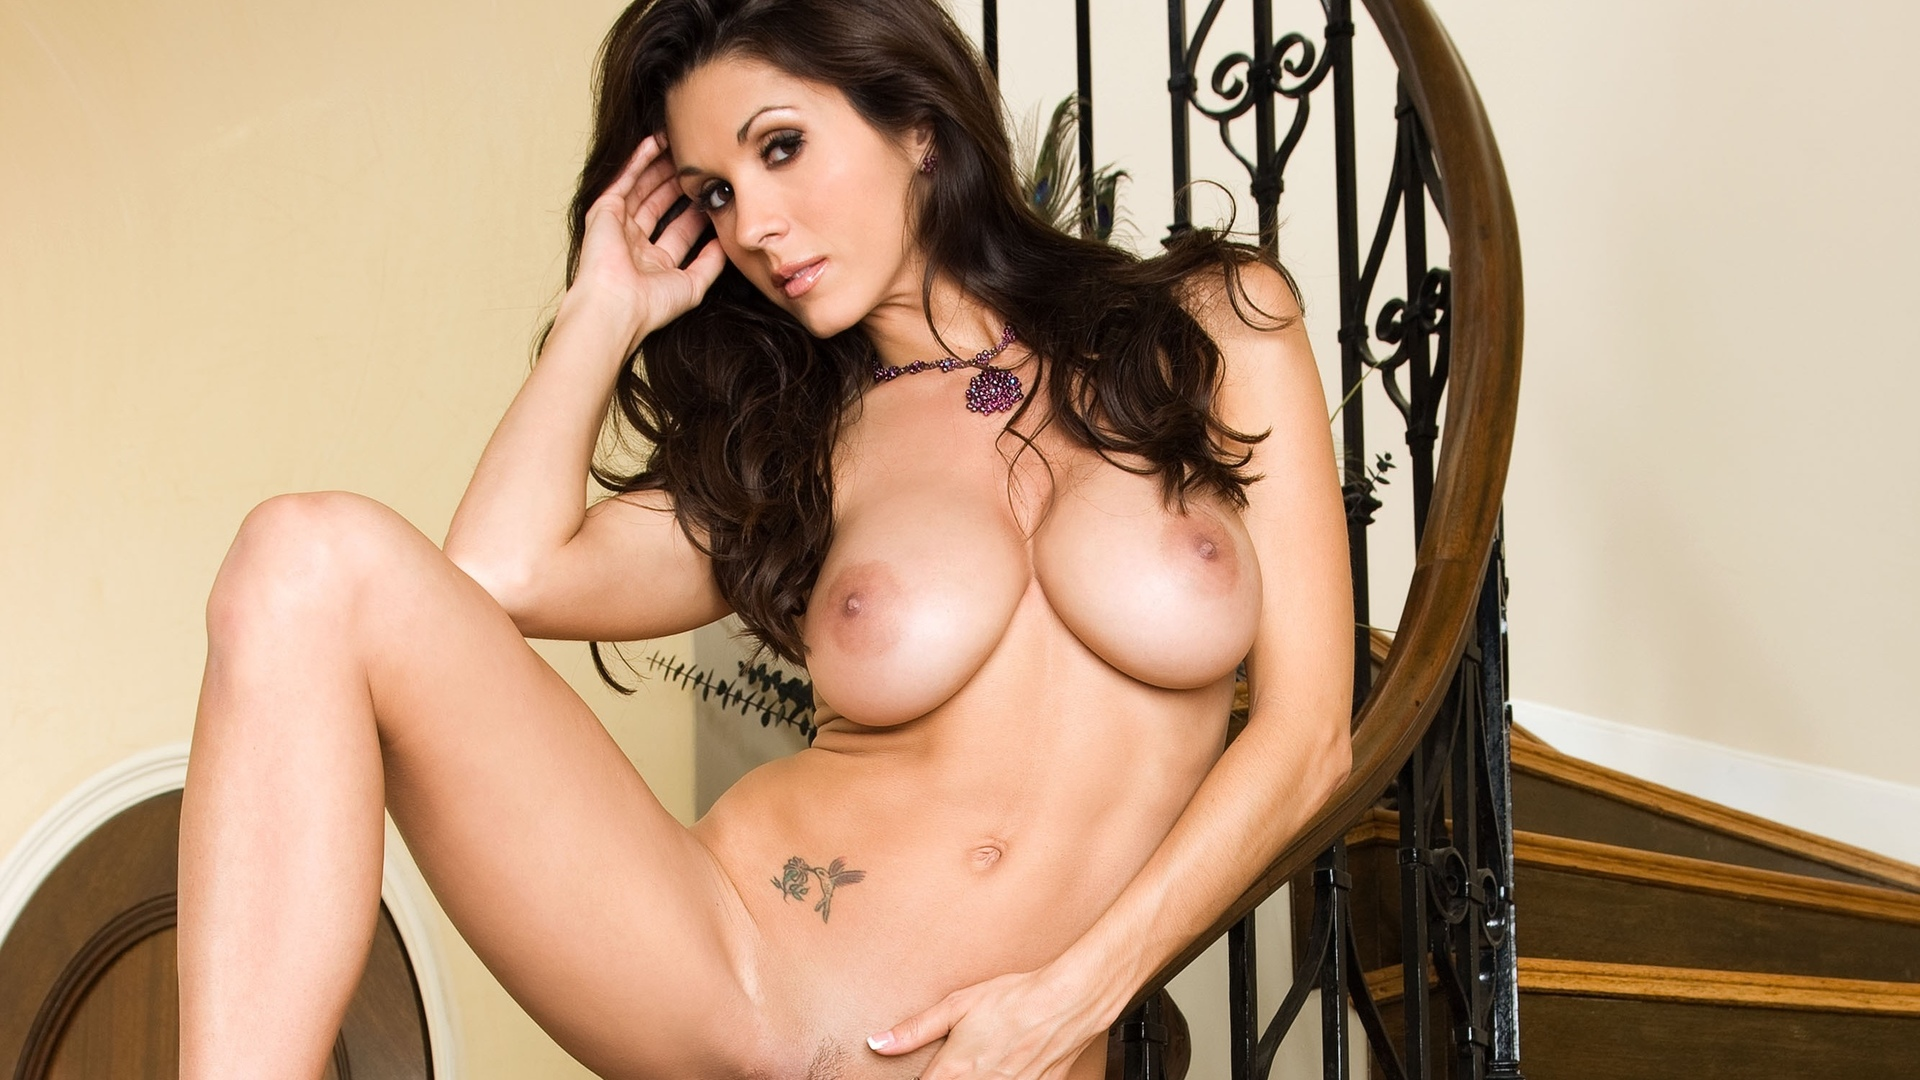 Taya parker wants you to come and please her tight pussy